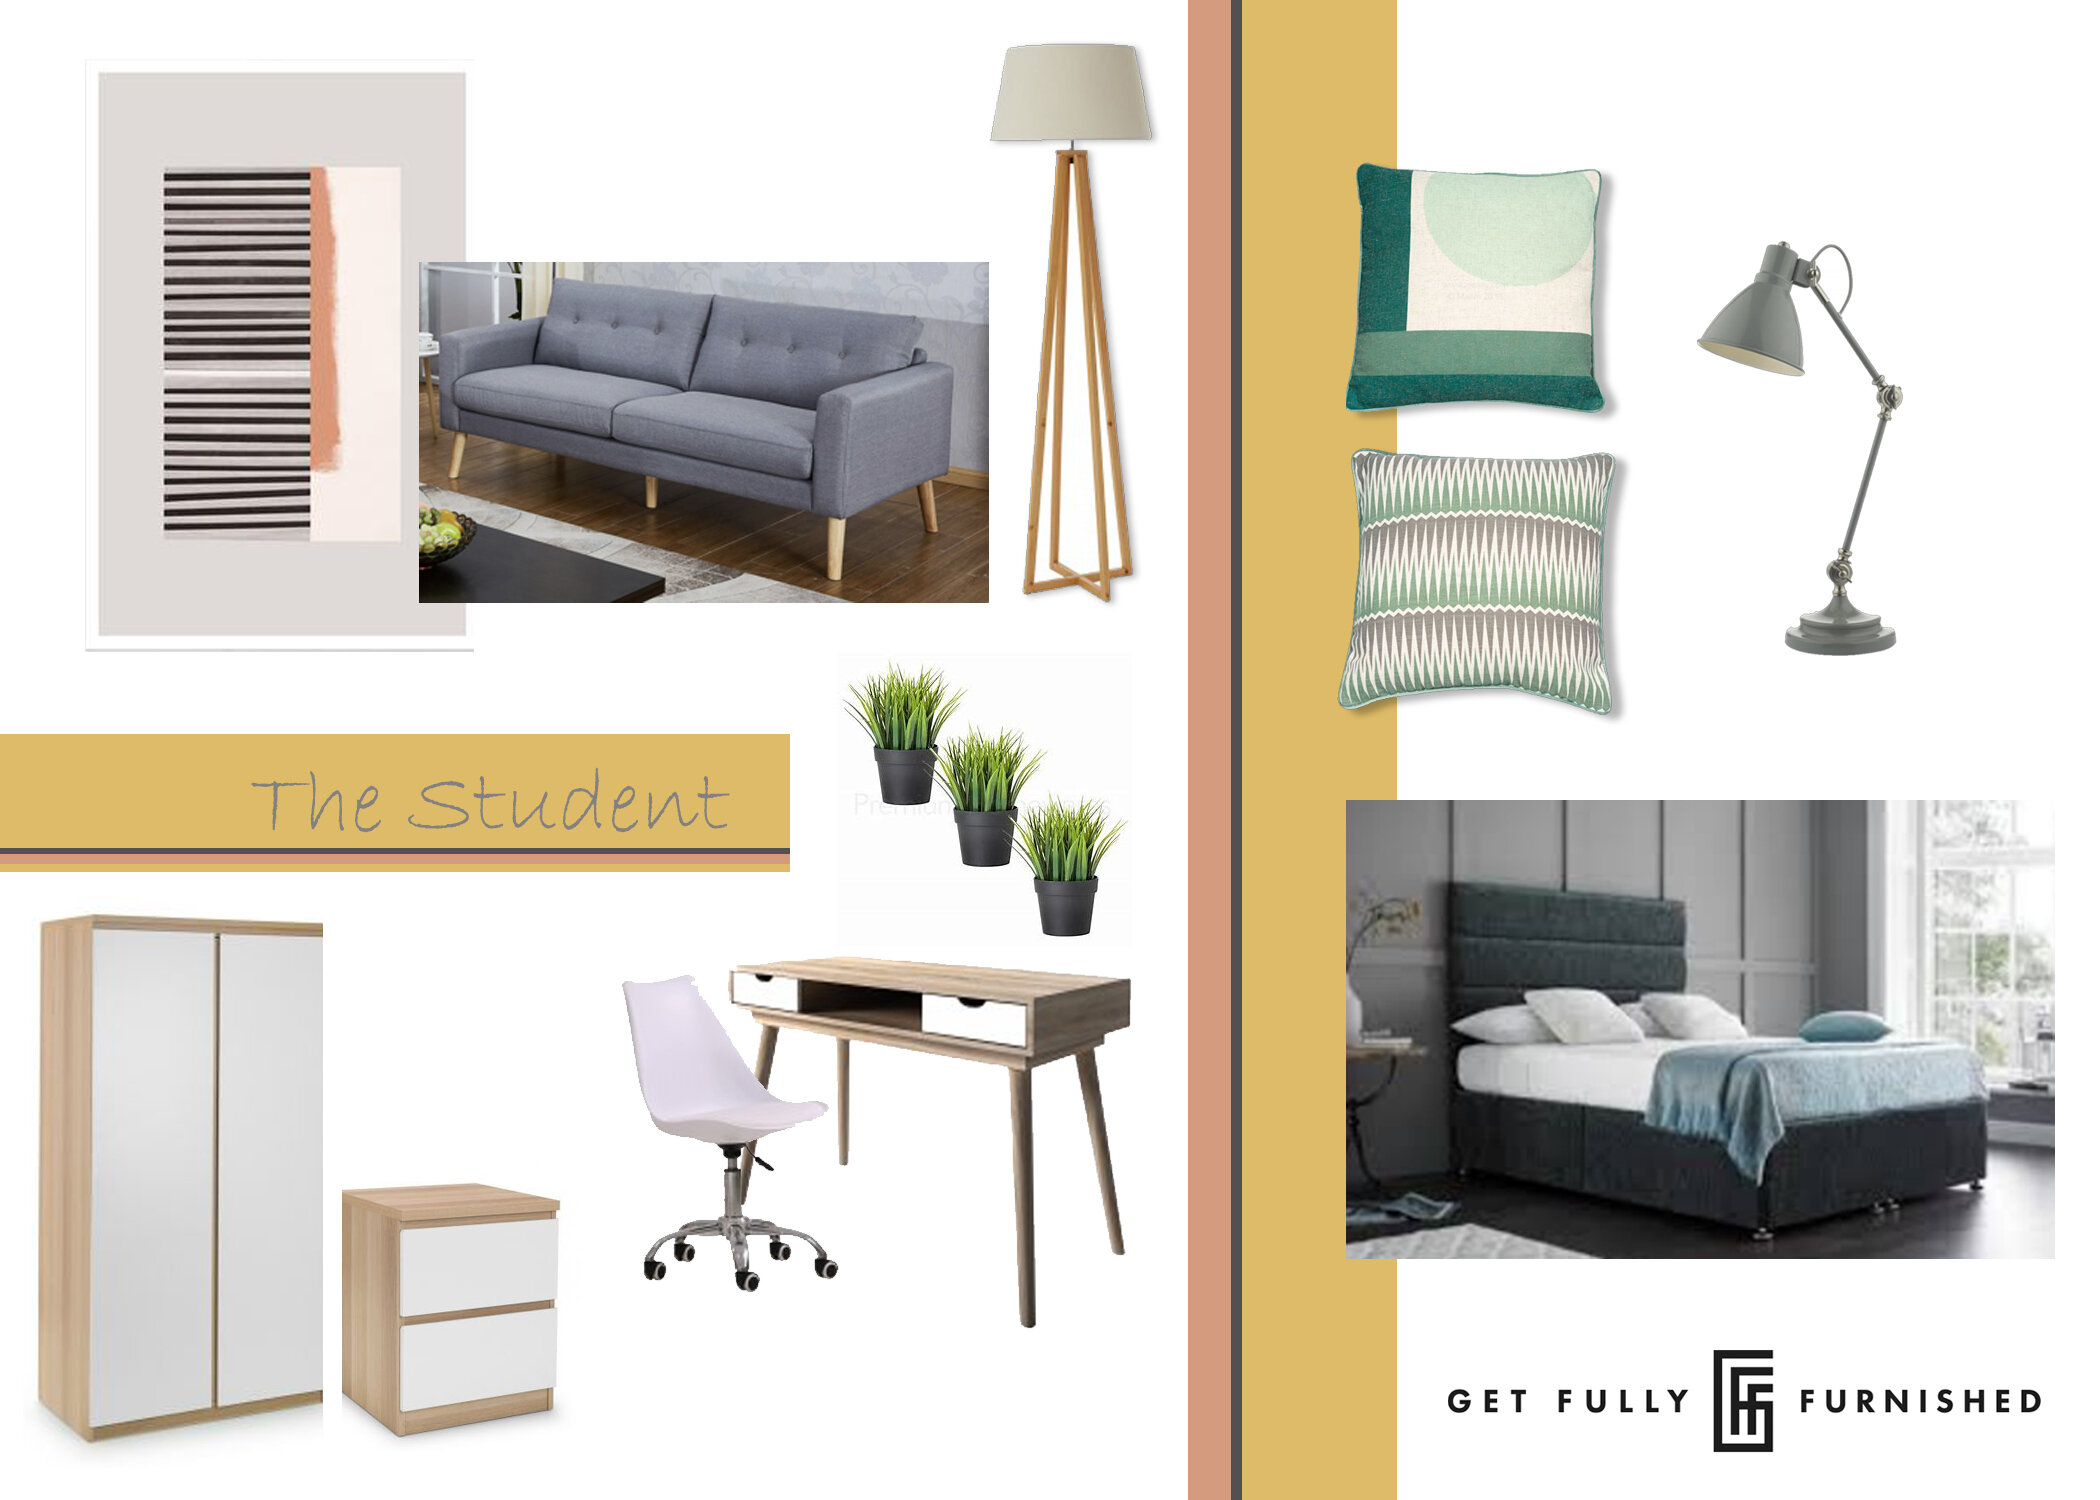 Furniture Packages Get Fully Furnished Furniture Packages Furniture Solutions